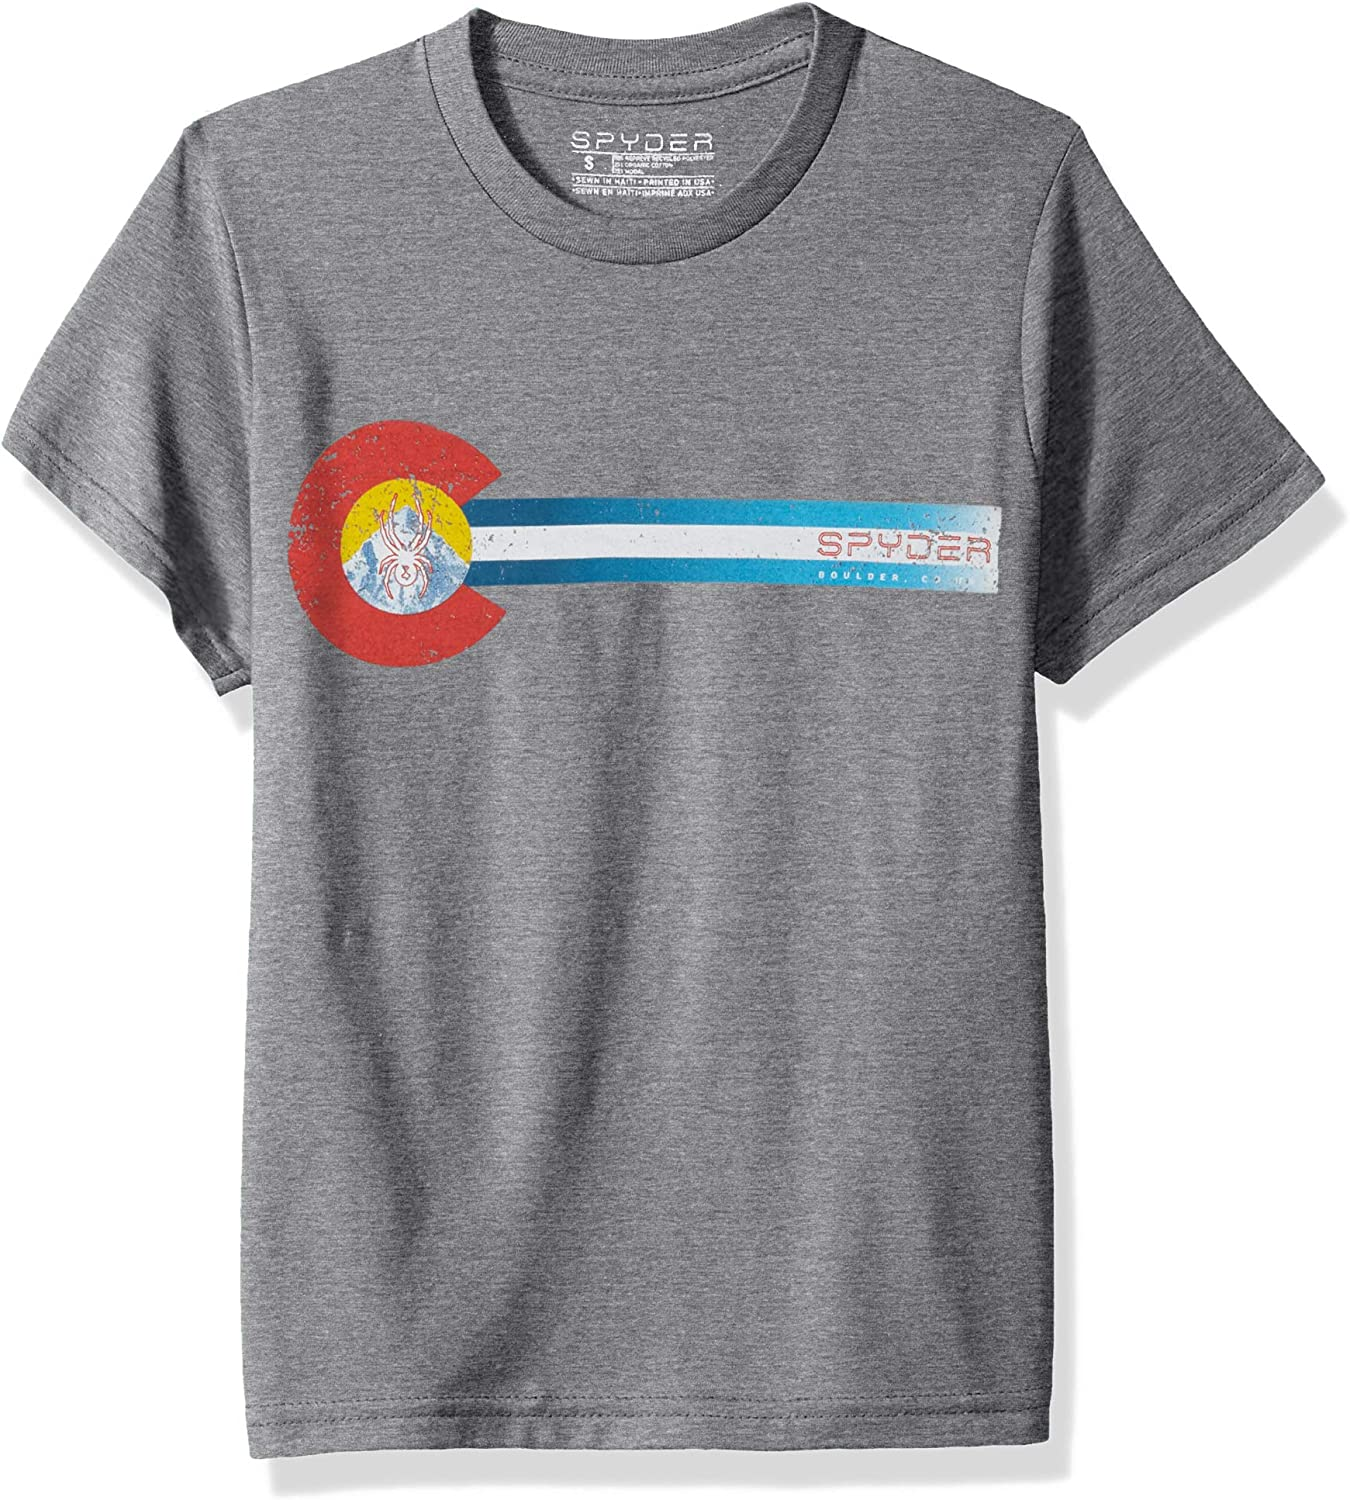 Spyder Co Flag Organic Cotton Blend Short Sleeve T-Shirt